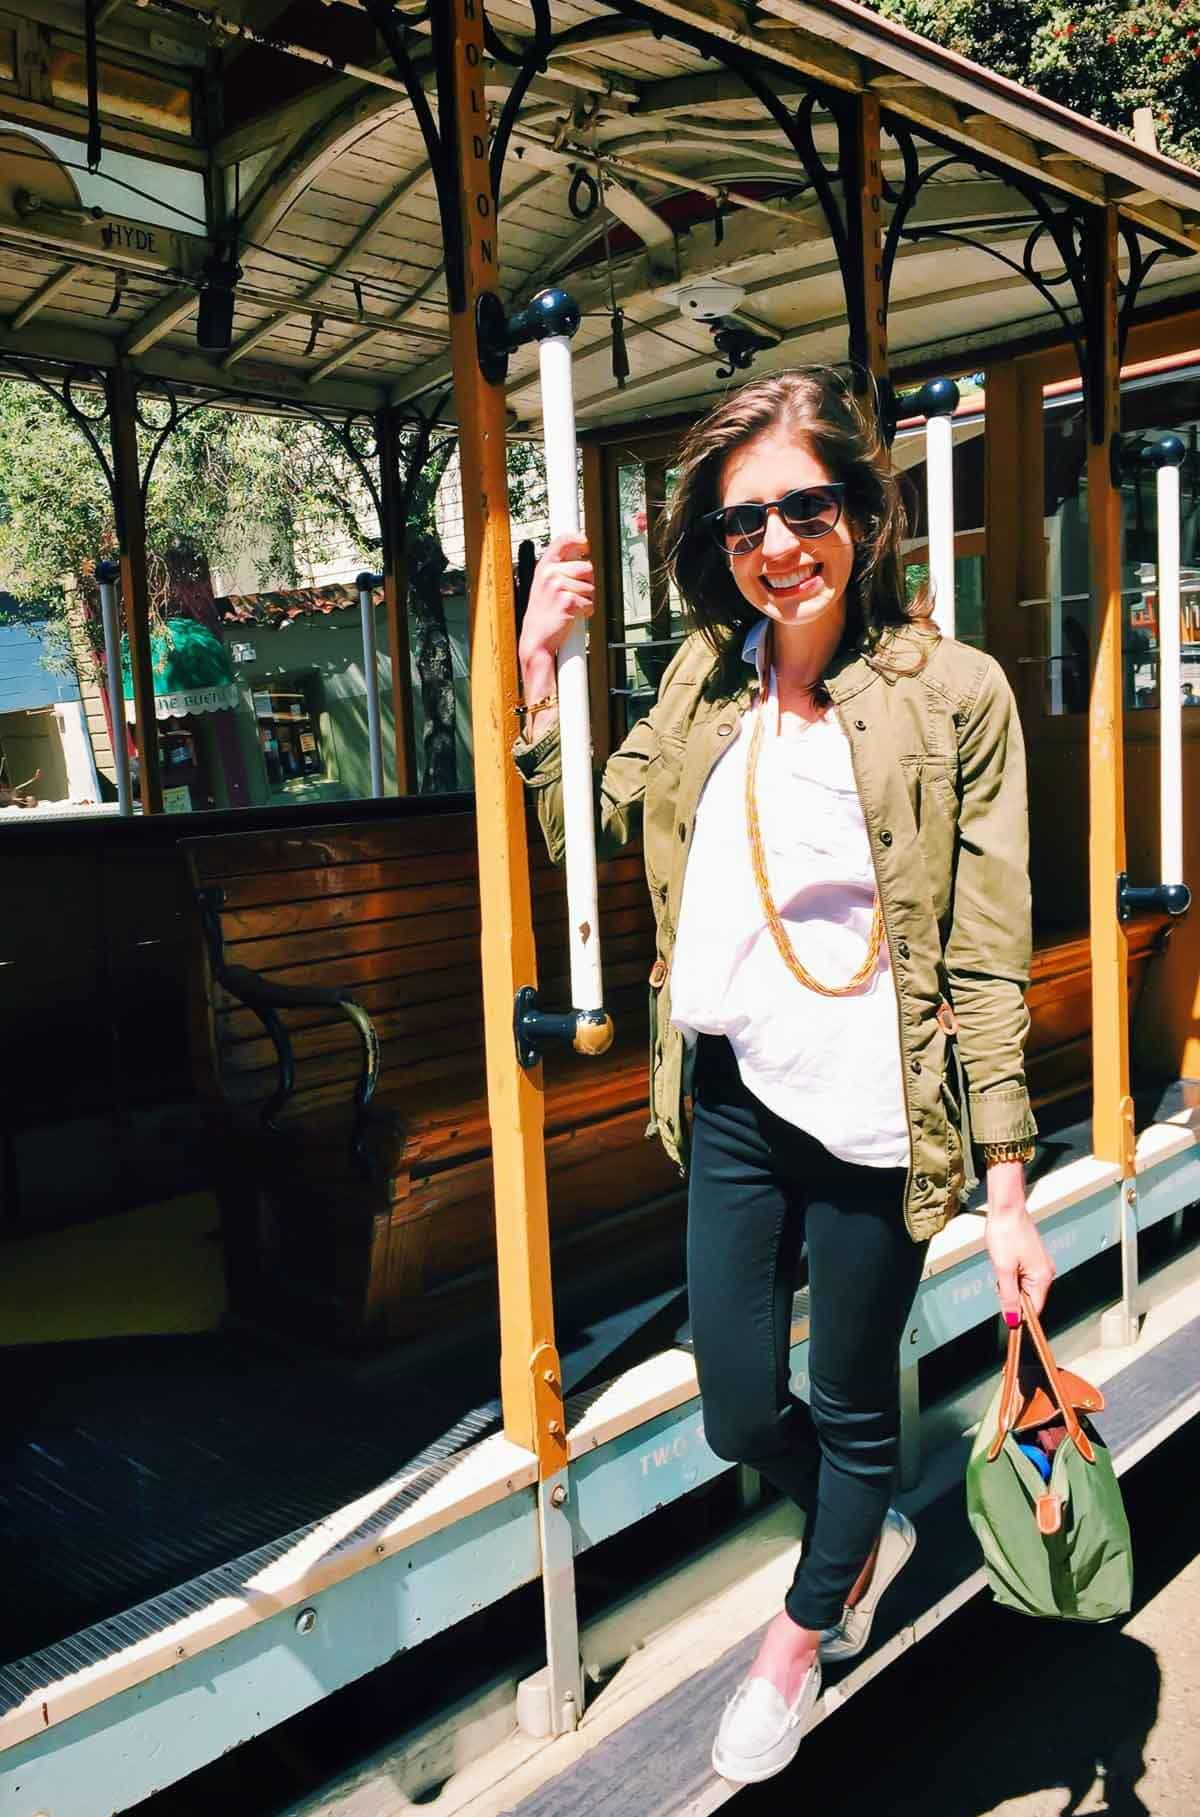 woman with long brown hair, wearing sunglasses, standing on a trolley car